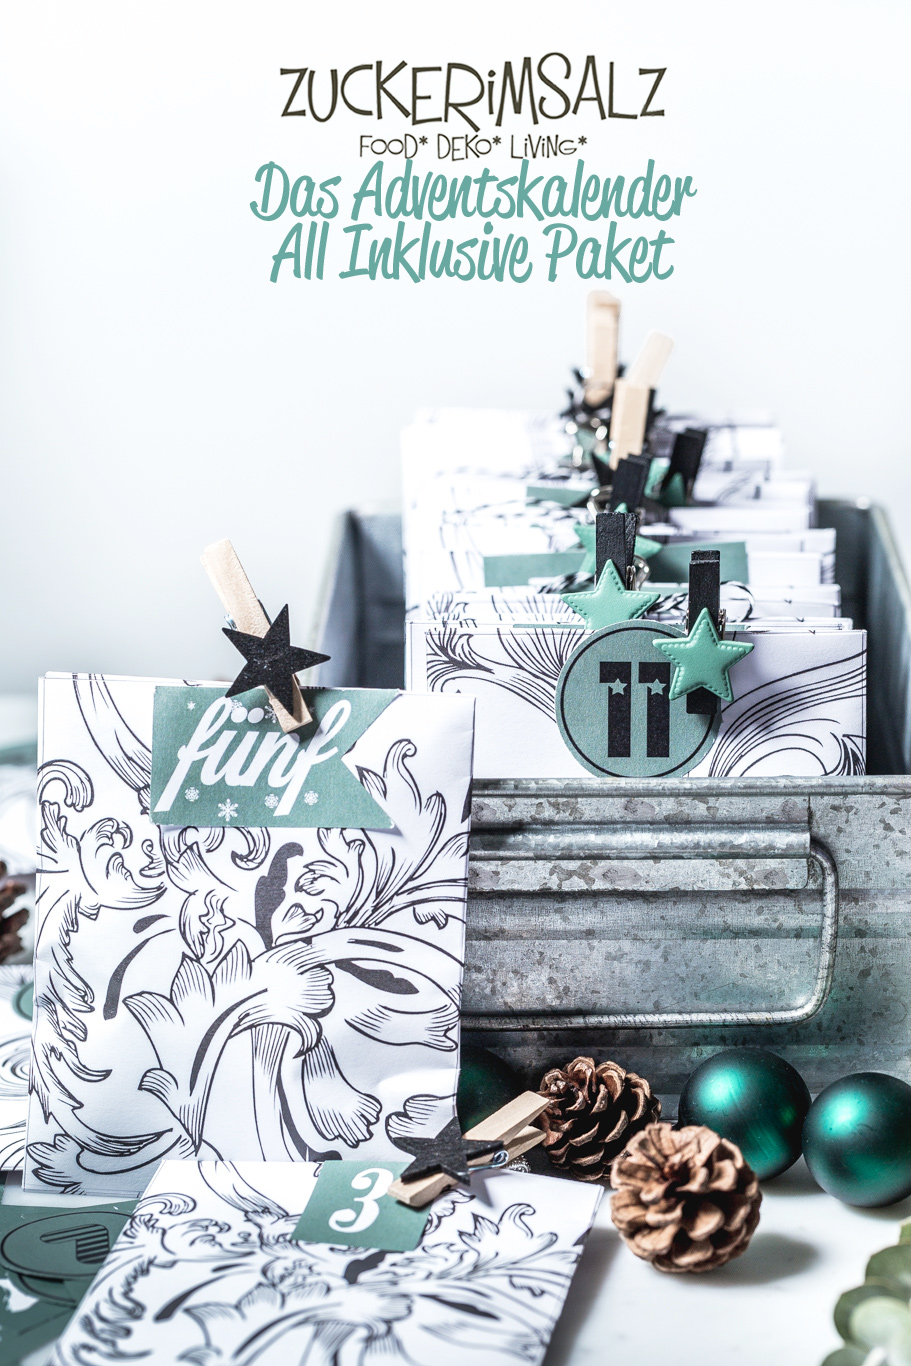 Das Adventskalender All Inklusive Paket